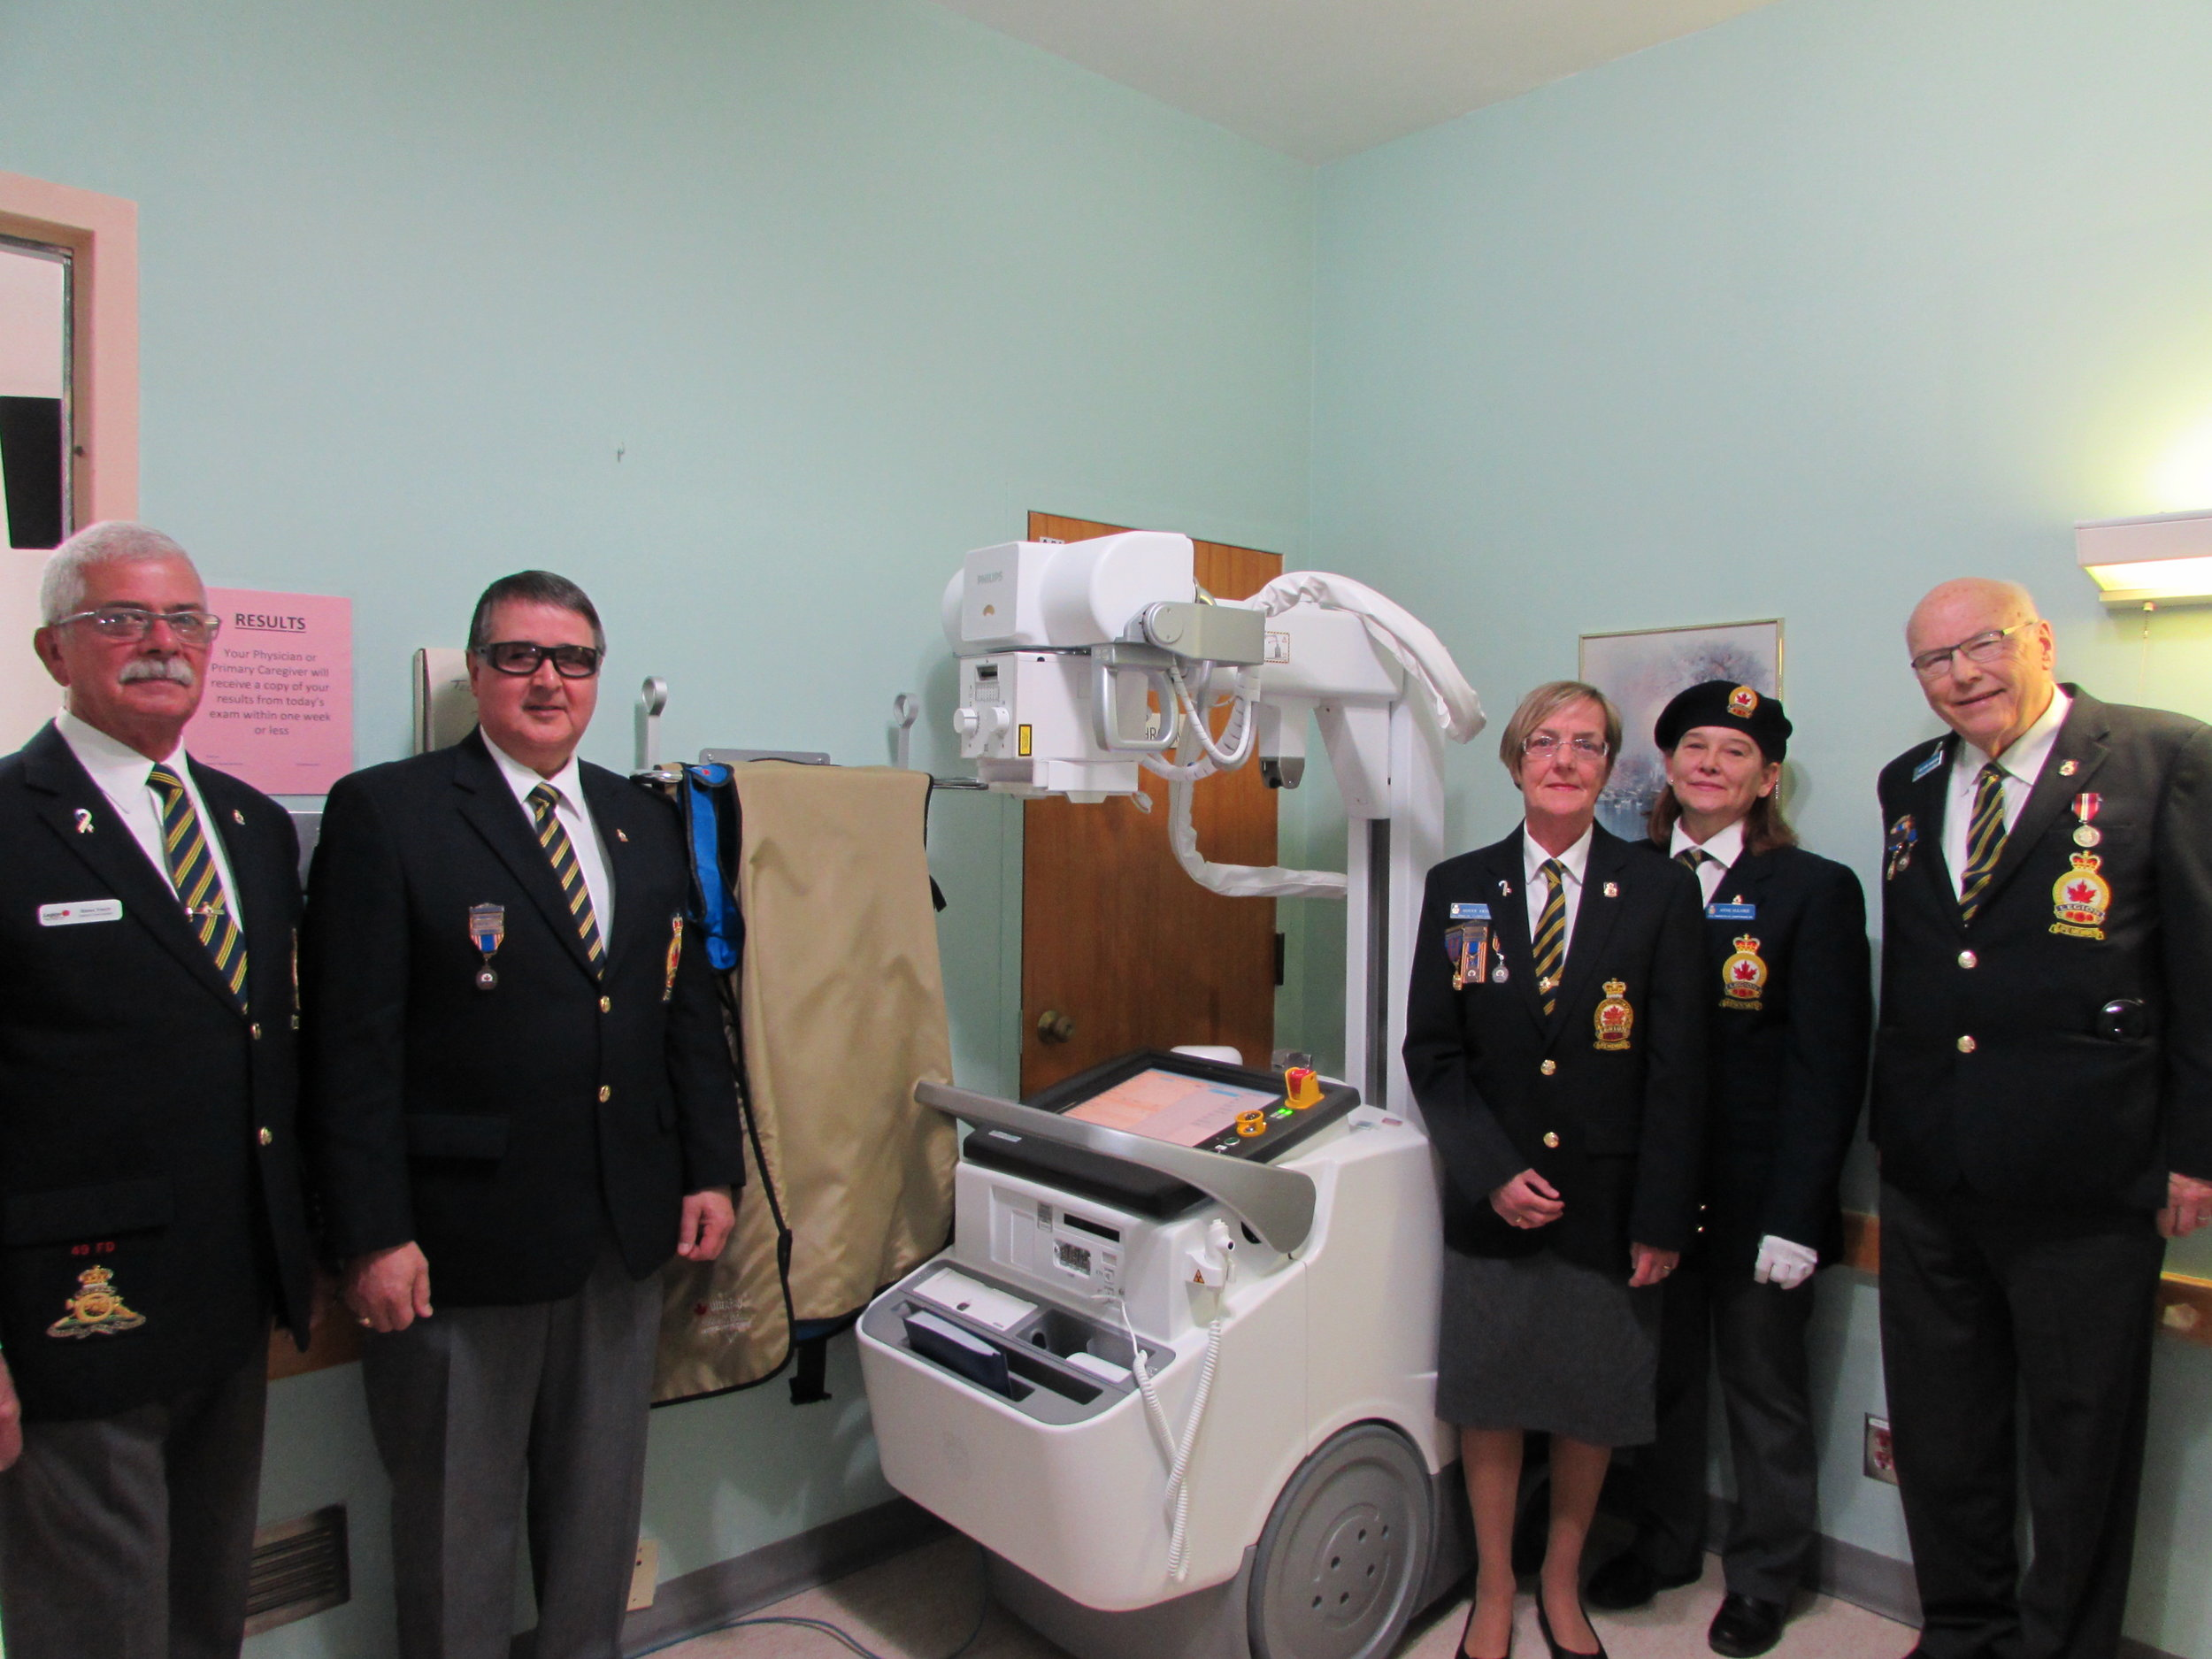 Digital Portable X-ray - $1,000 donation provided toward this equipment from the Richards Landing Legion Branch # 374 Poppy Fund   (Left to right) Steve Frech –District H Commander, John Shannon – Secretary, Gonny Frech – Treasurer, Anne Allaire – Branch President and Hugh Hamilton – Charitable Foundation Chairperson